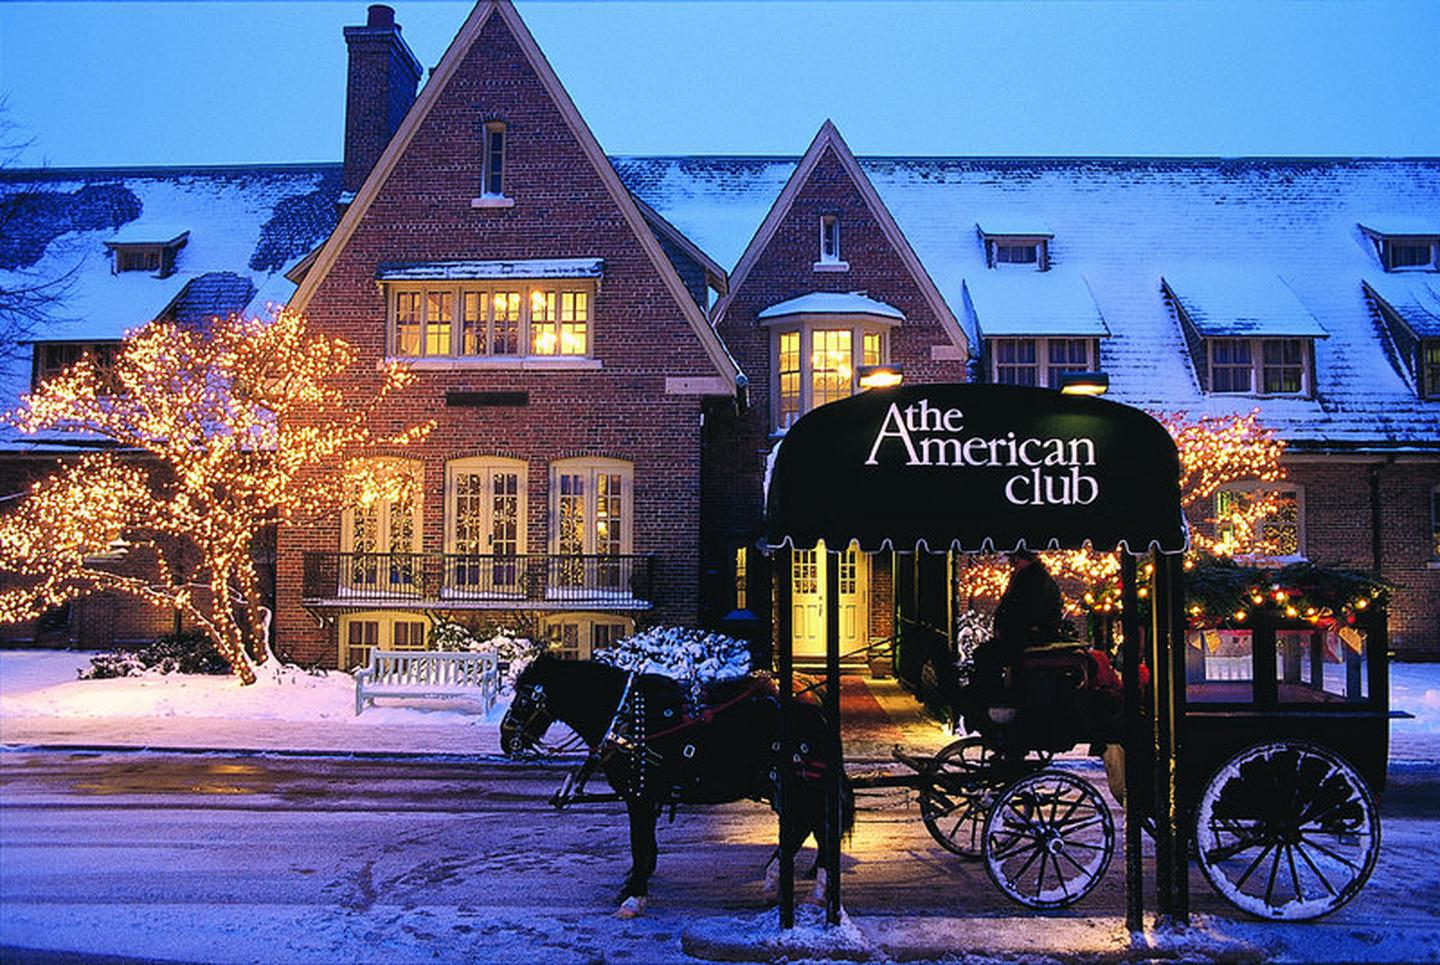 The American ClubFor special getaways, the American Club also offers accommodations in the adults-only Carriage House.